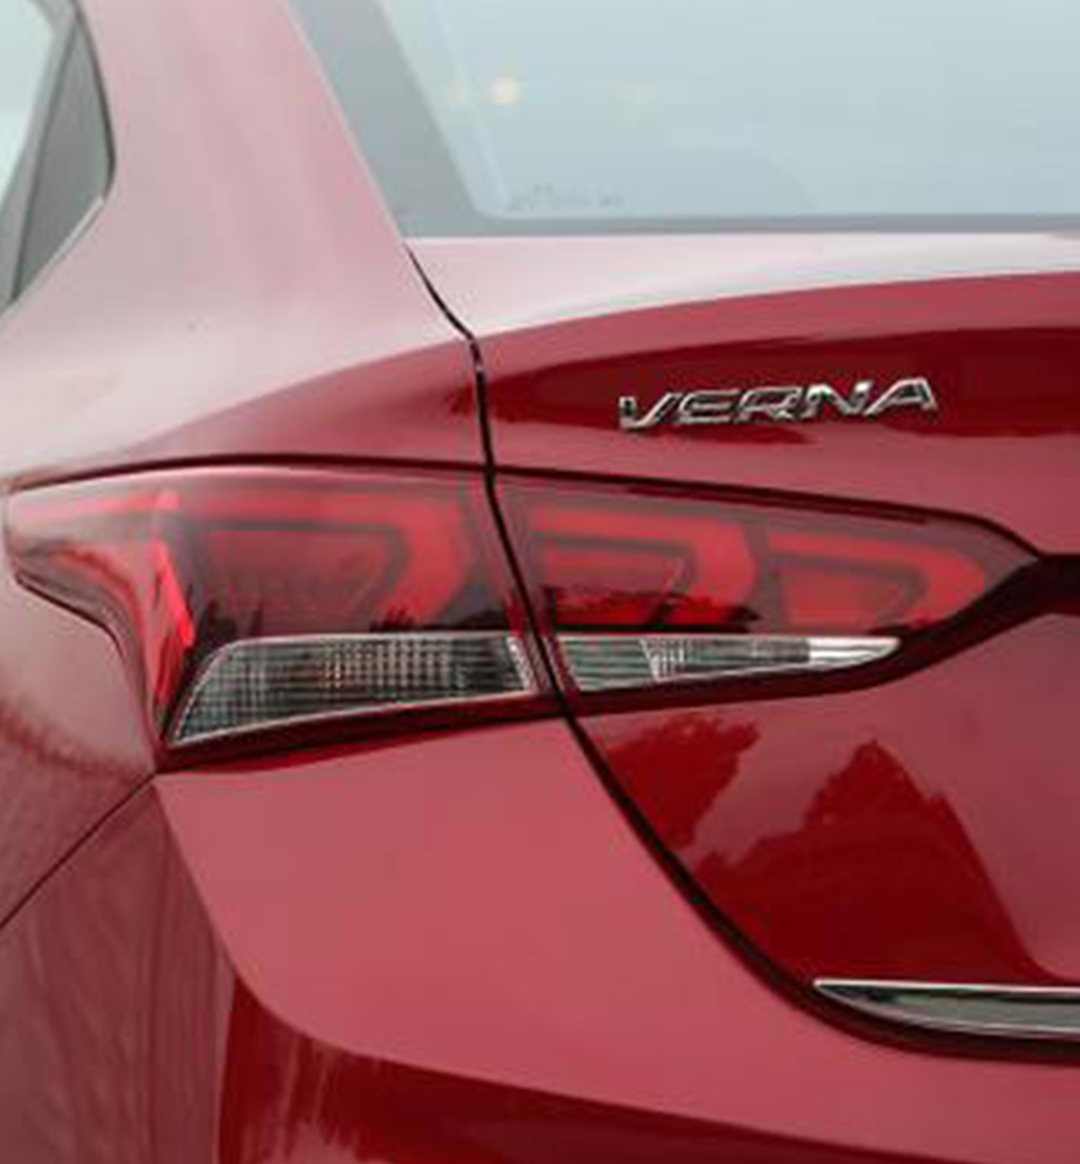 https://iciciauto.com/storage/upload/model_images/Hyundai Verna-Sedan-Taillight .jpg